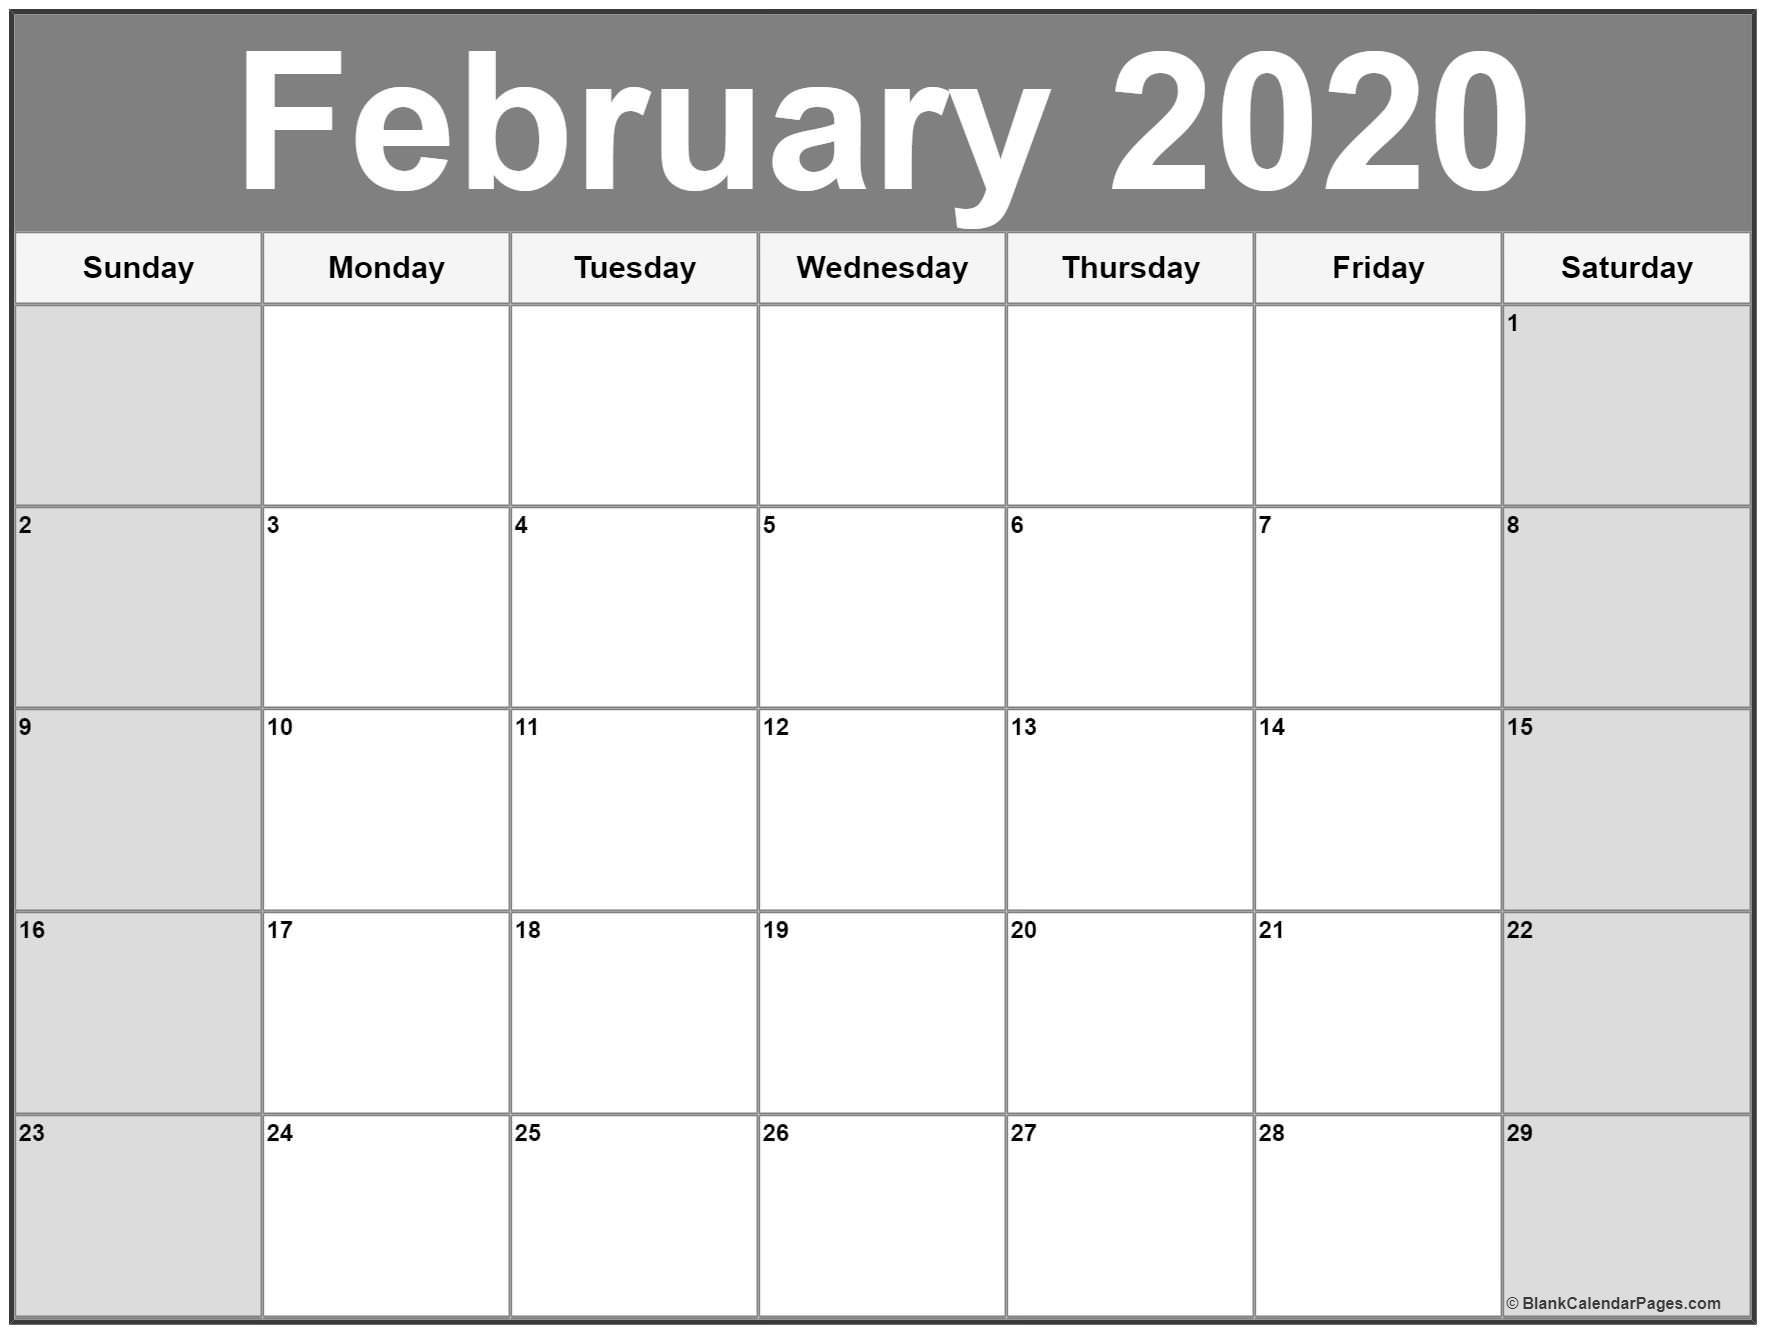 February 2020 Printable Calendar Cute.Free Monthly February Calendar 2020 Printable Template